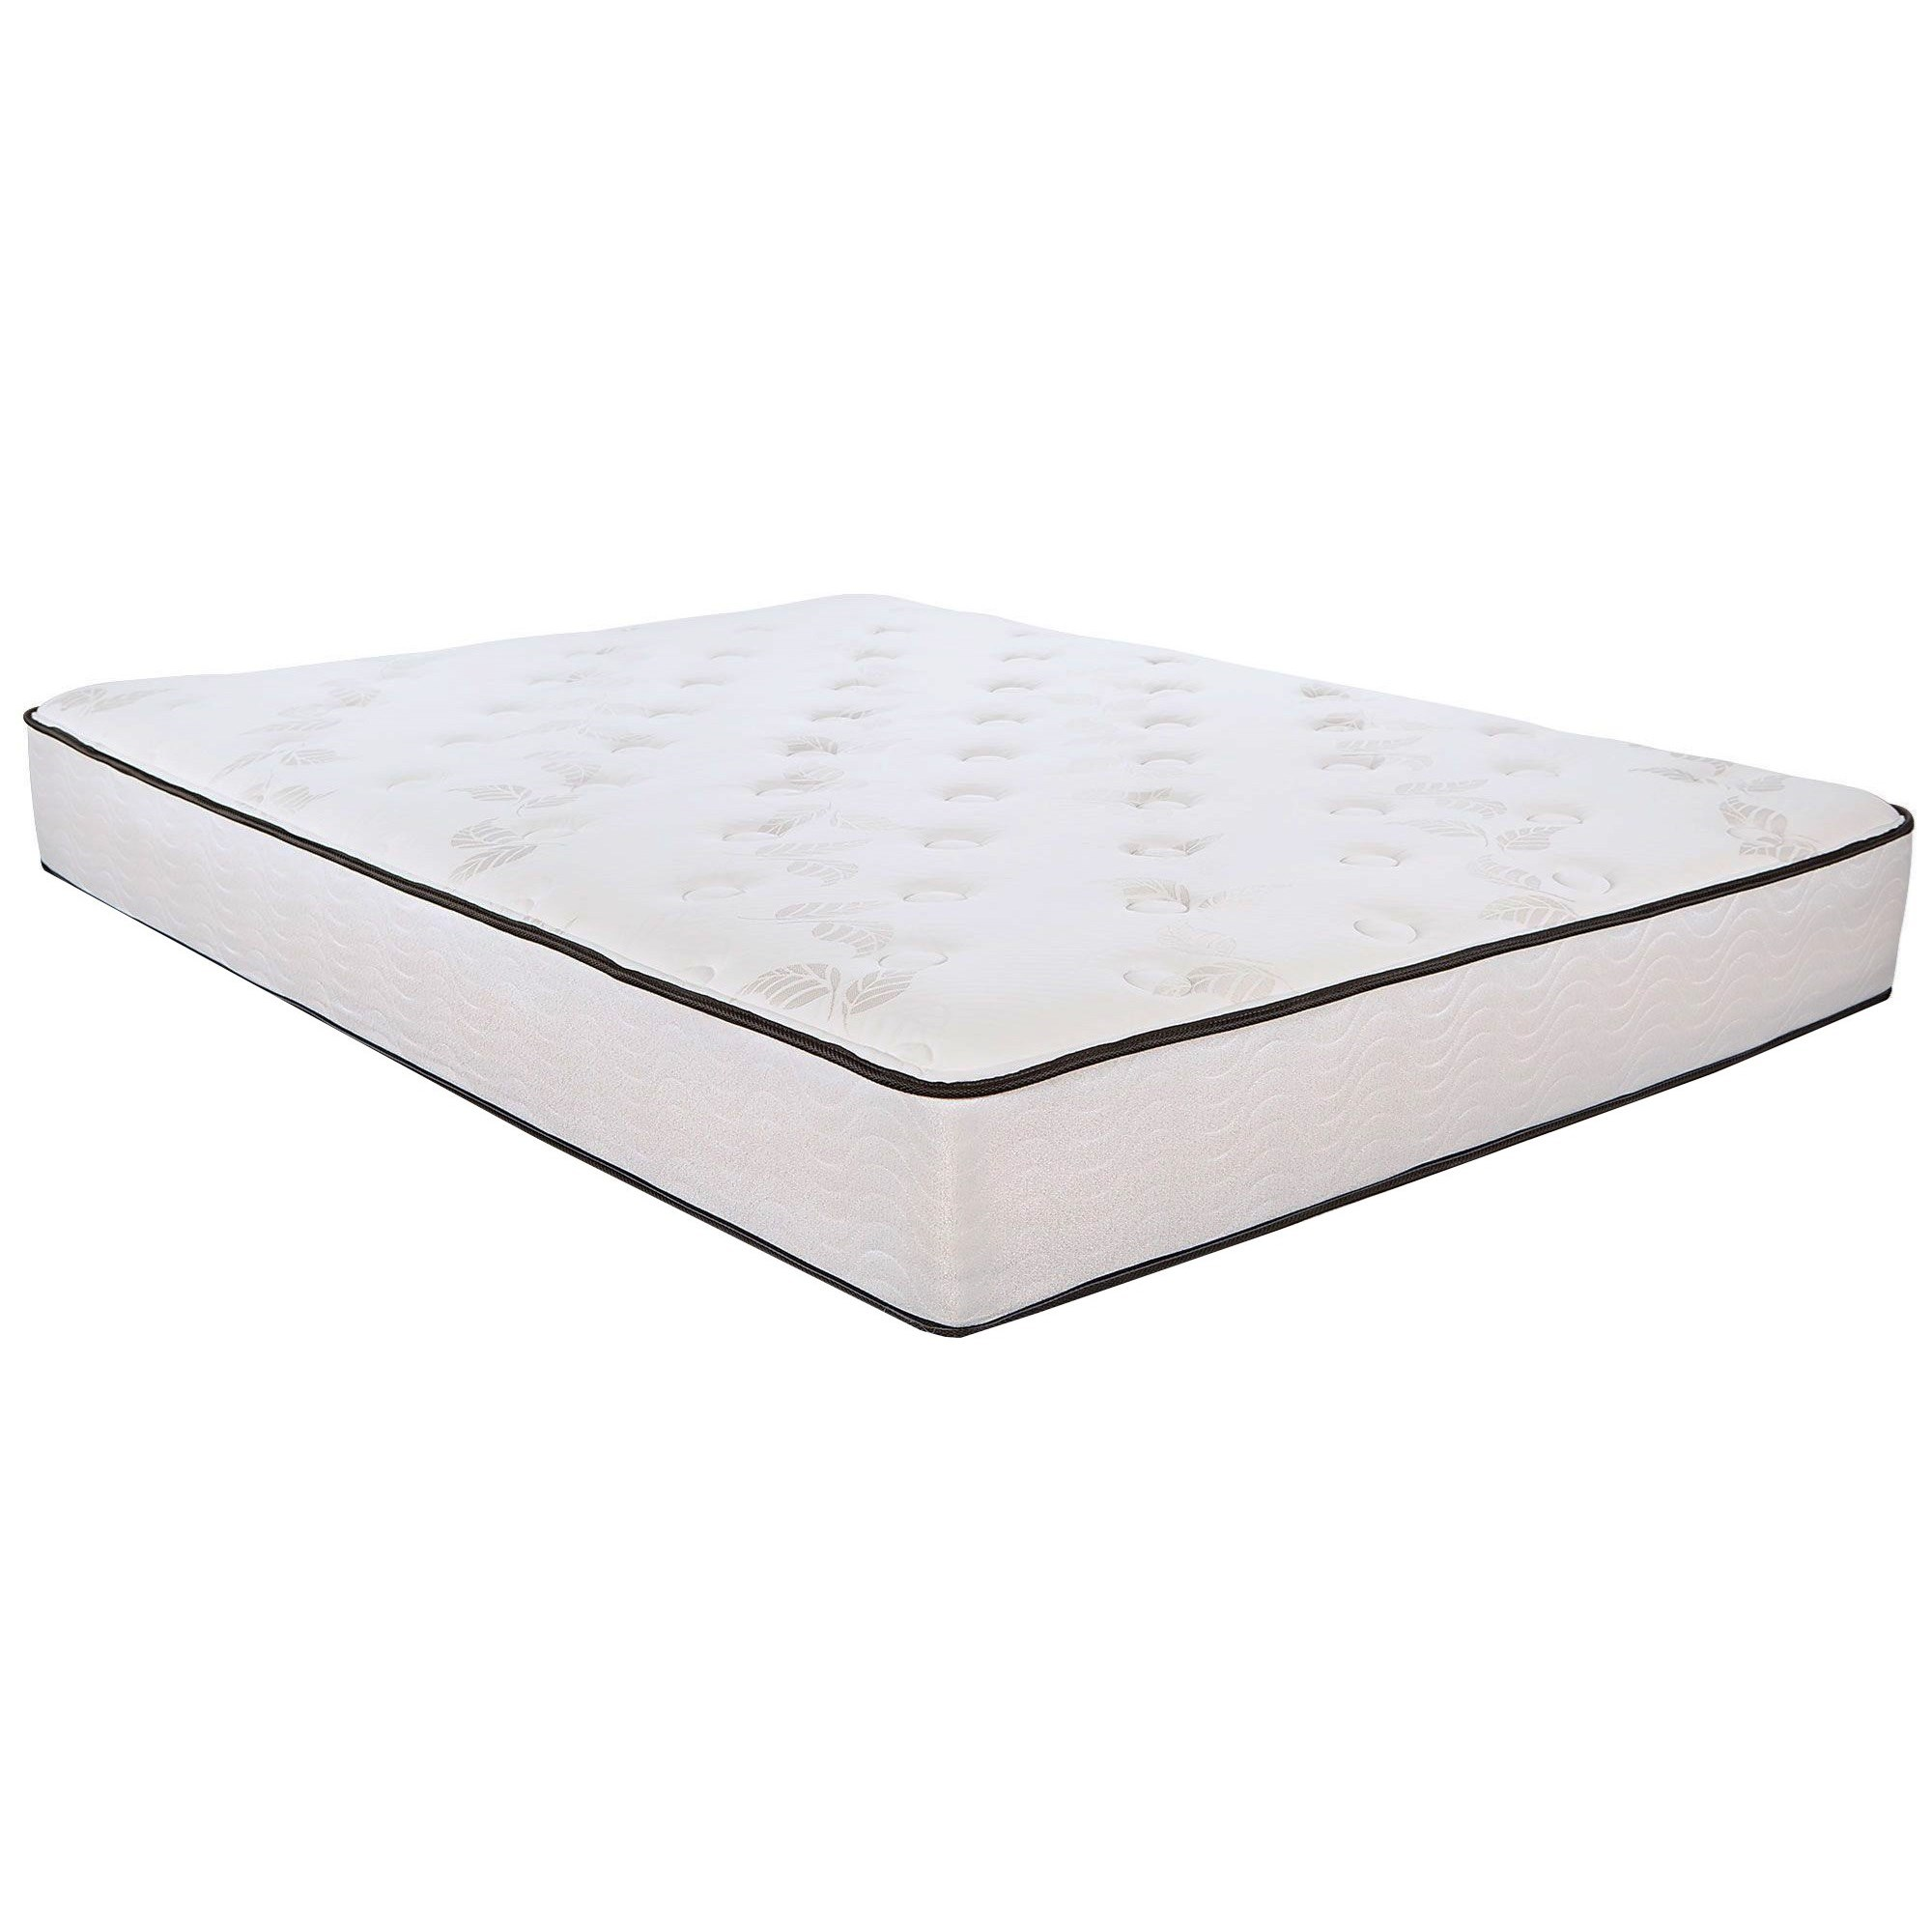 "5500 Plush King 10.9"" Innerspring Mattress by Southerland Bedding Co. at Jacksonville Furniture Mart"